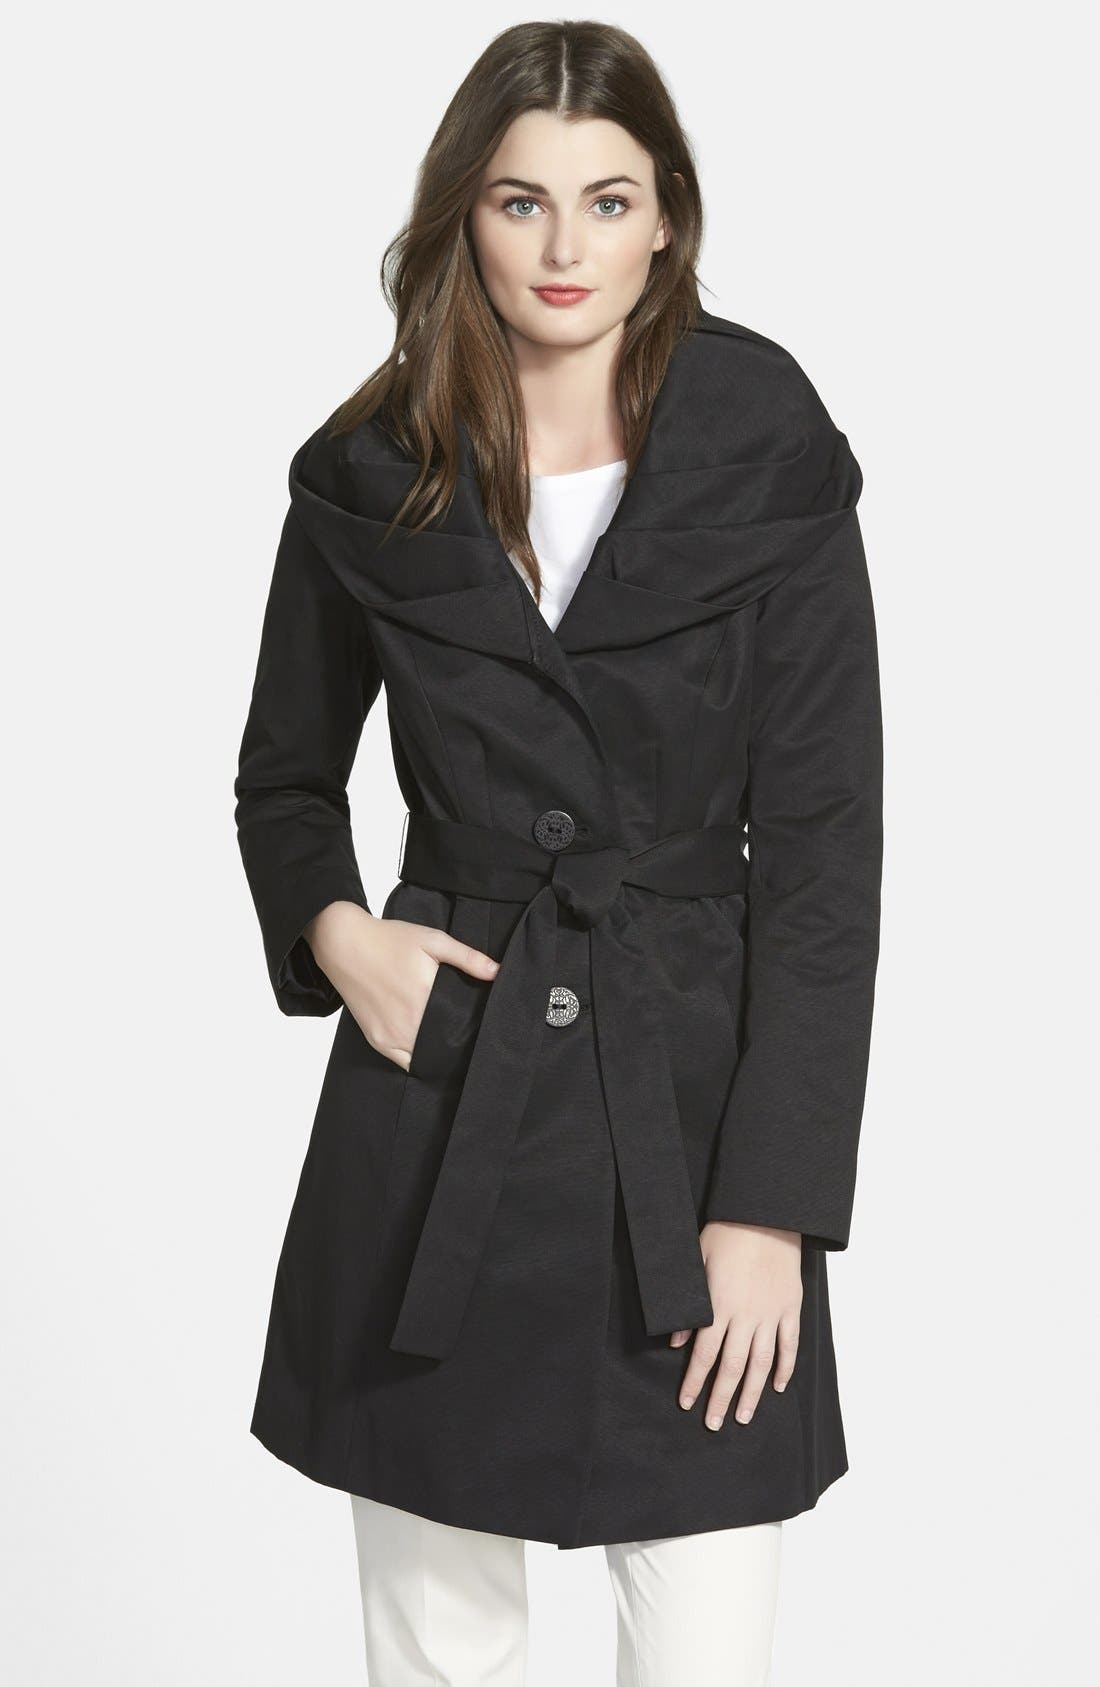 Main Image - T Tahari 'Cheryl' Trench Coat